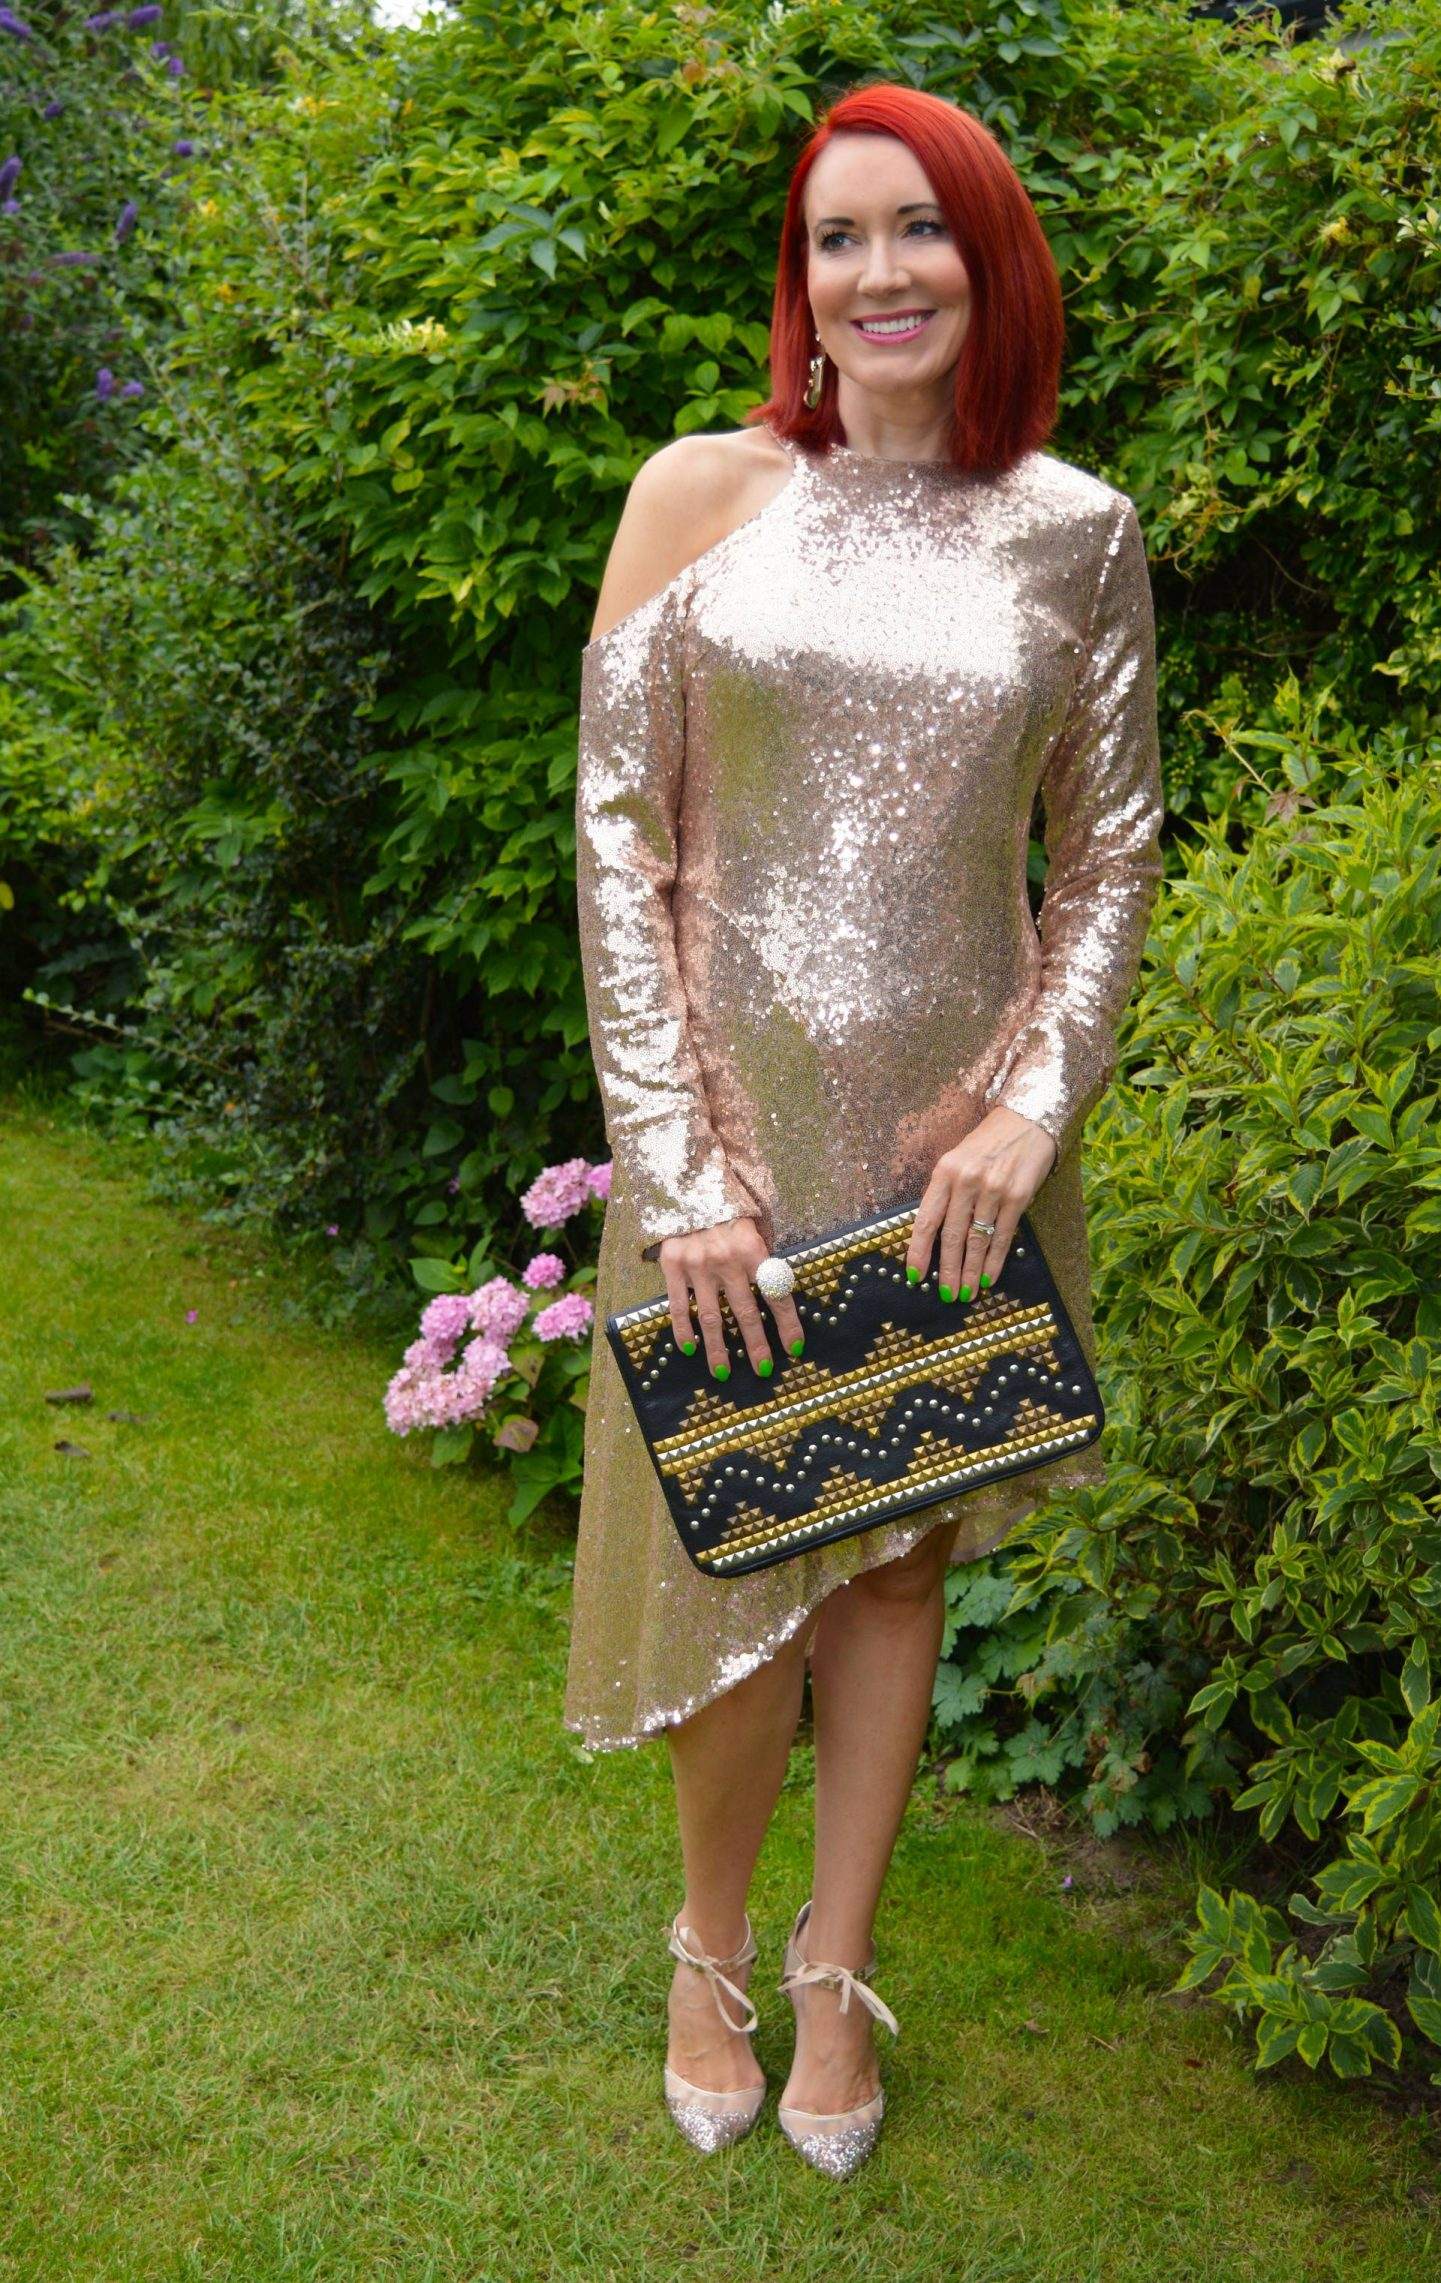 Fool's Gold - August's Thrifty Six, Kitri gold sequin dress, Betsey Johnson gold glitter shoes, Asos black studded clutch